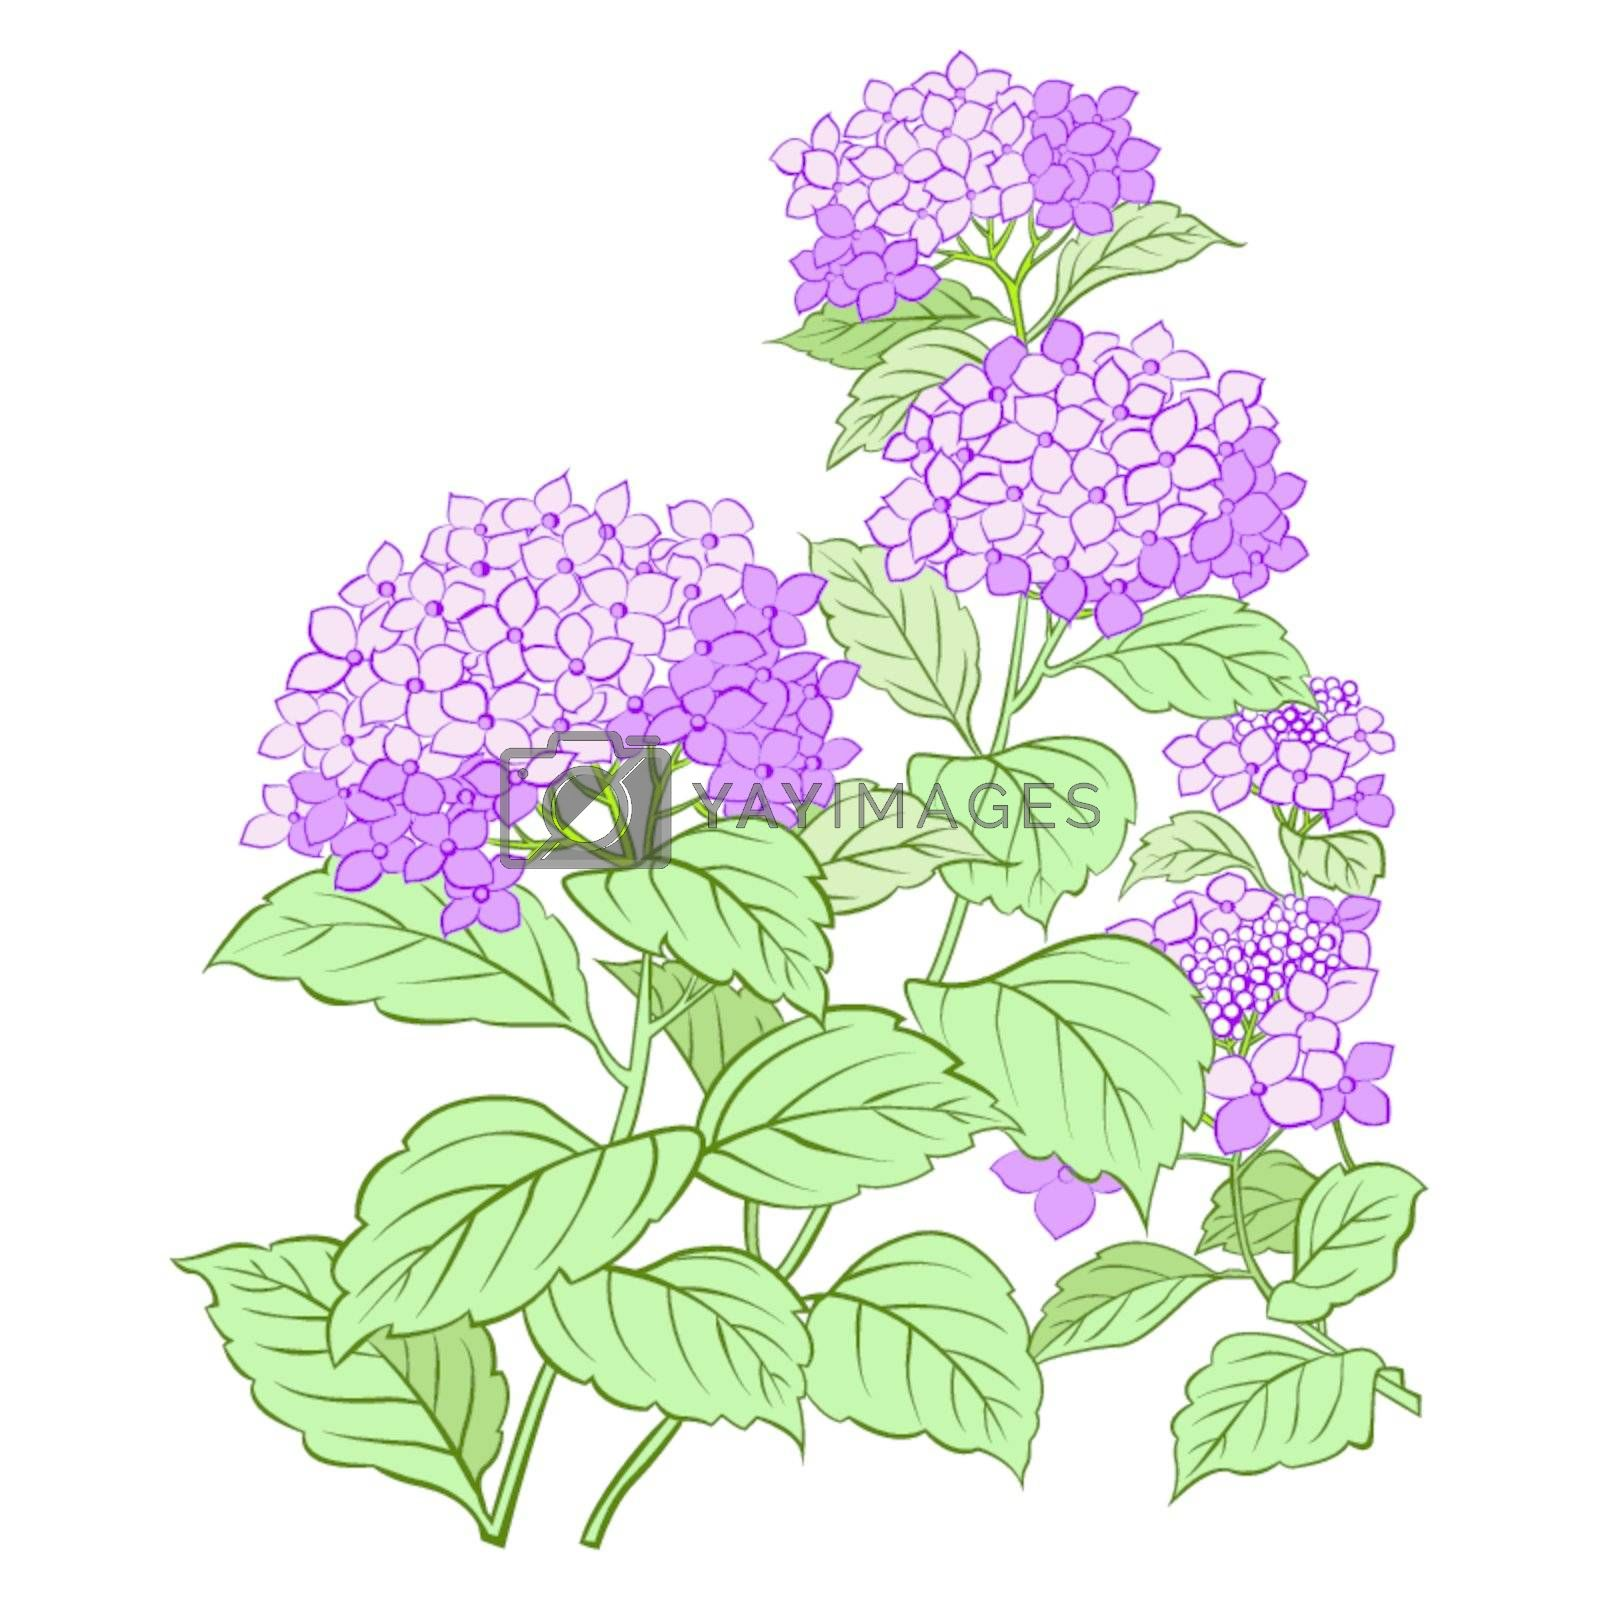 Hydrangea flower and leaf isolated on white